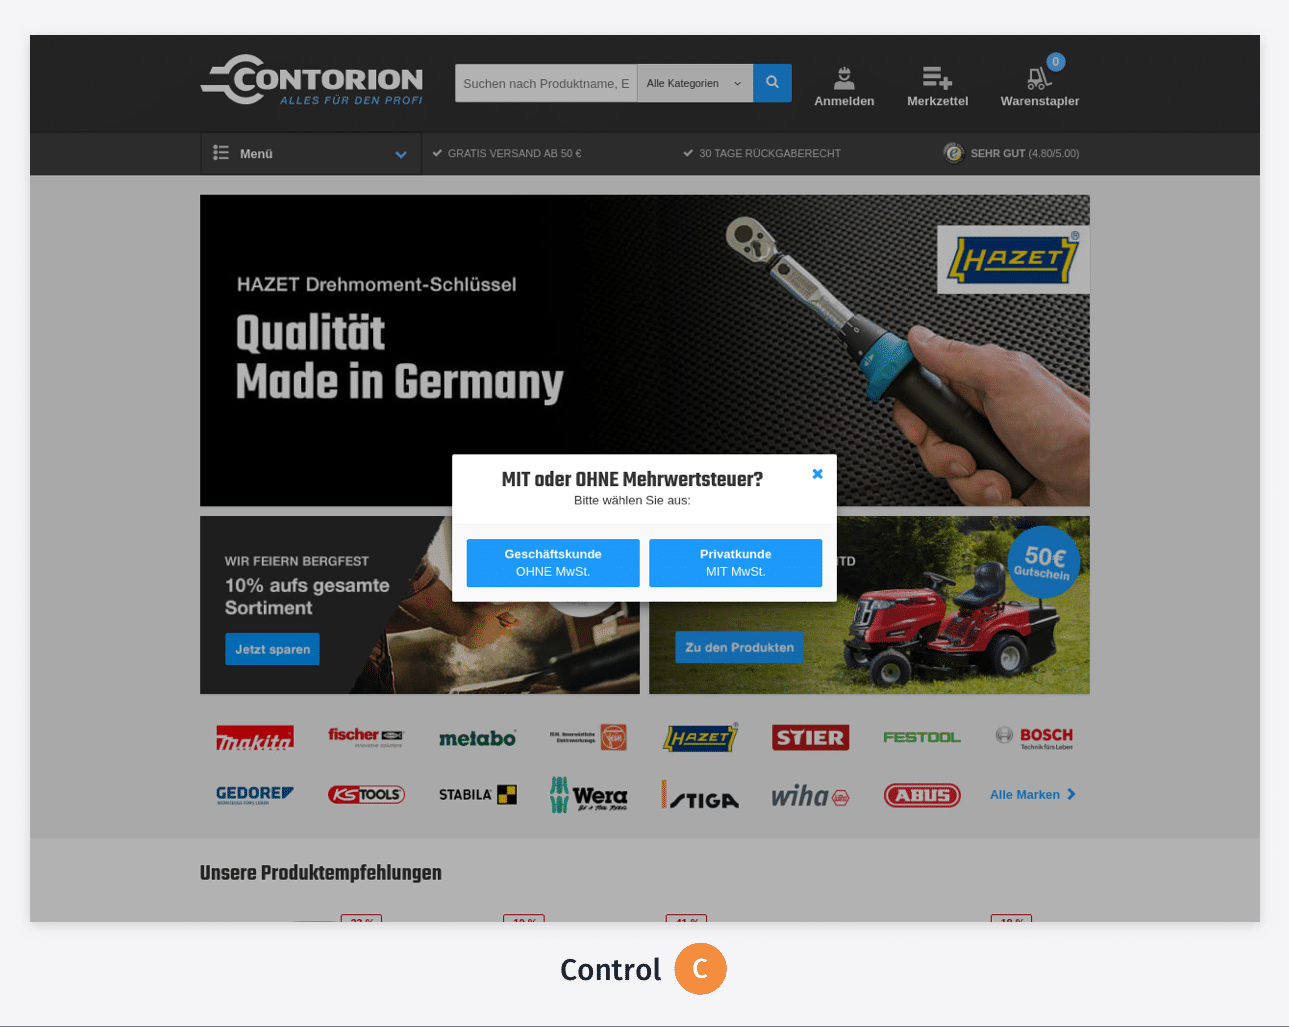 Control of the Test 1 on Contorion website